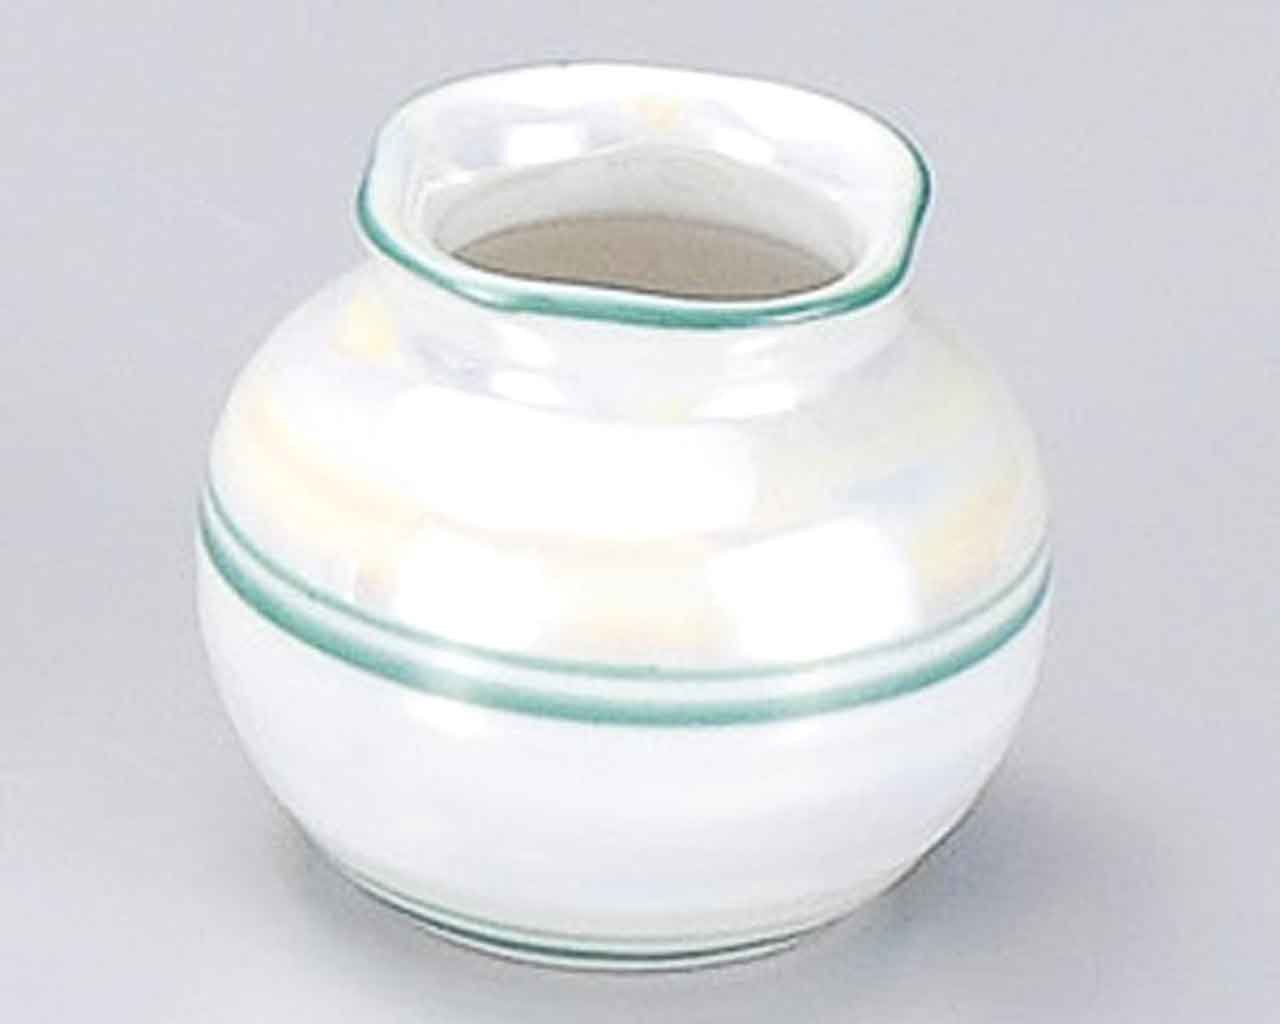 Laster Glaze 2inch Set of 5 Toothpick holders White porcelain Made in Japan by Watou.asia